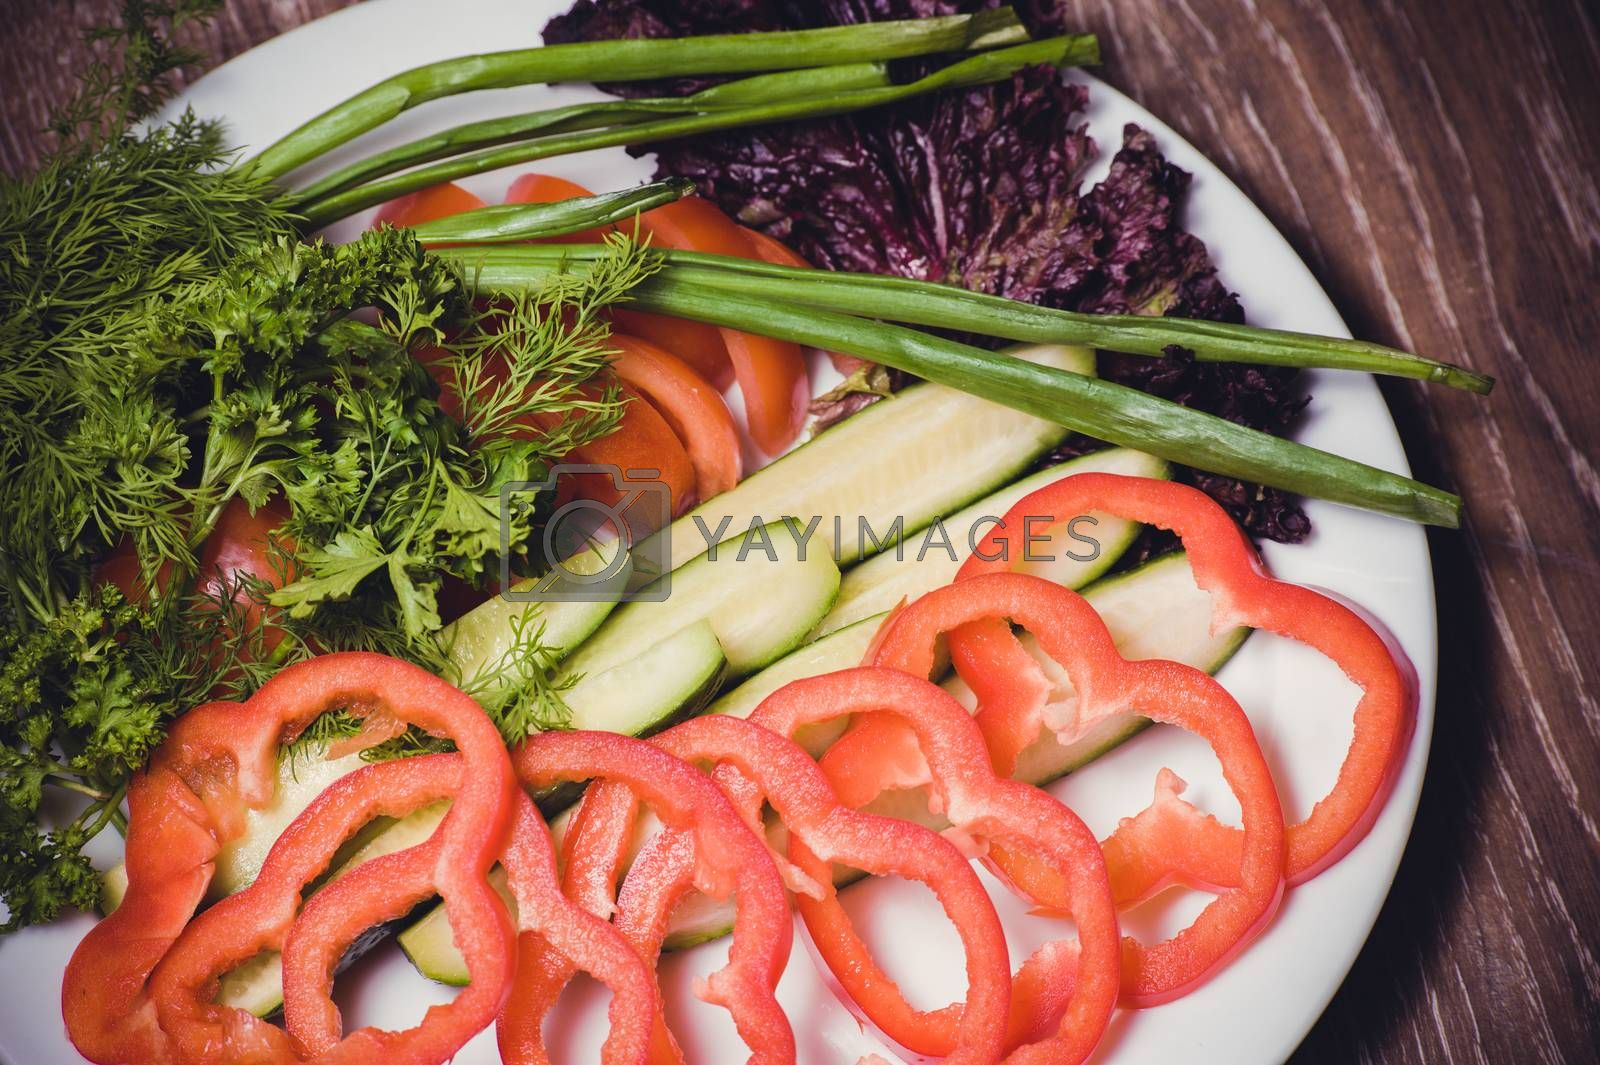 cut tomato, cucumber and bell pepper, on white plate